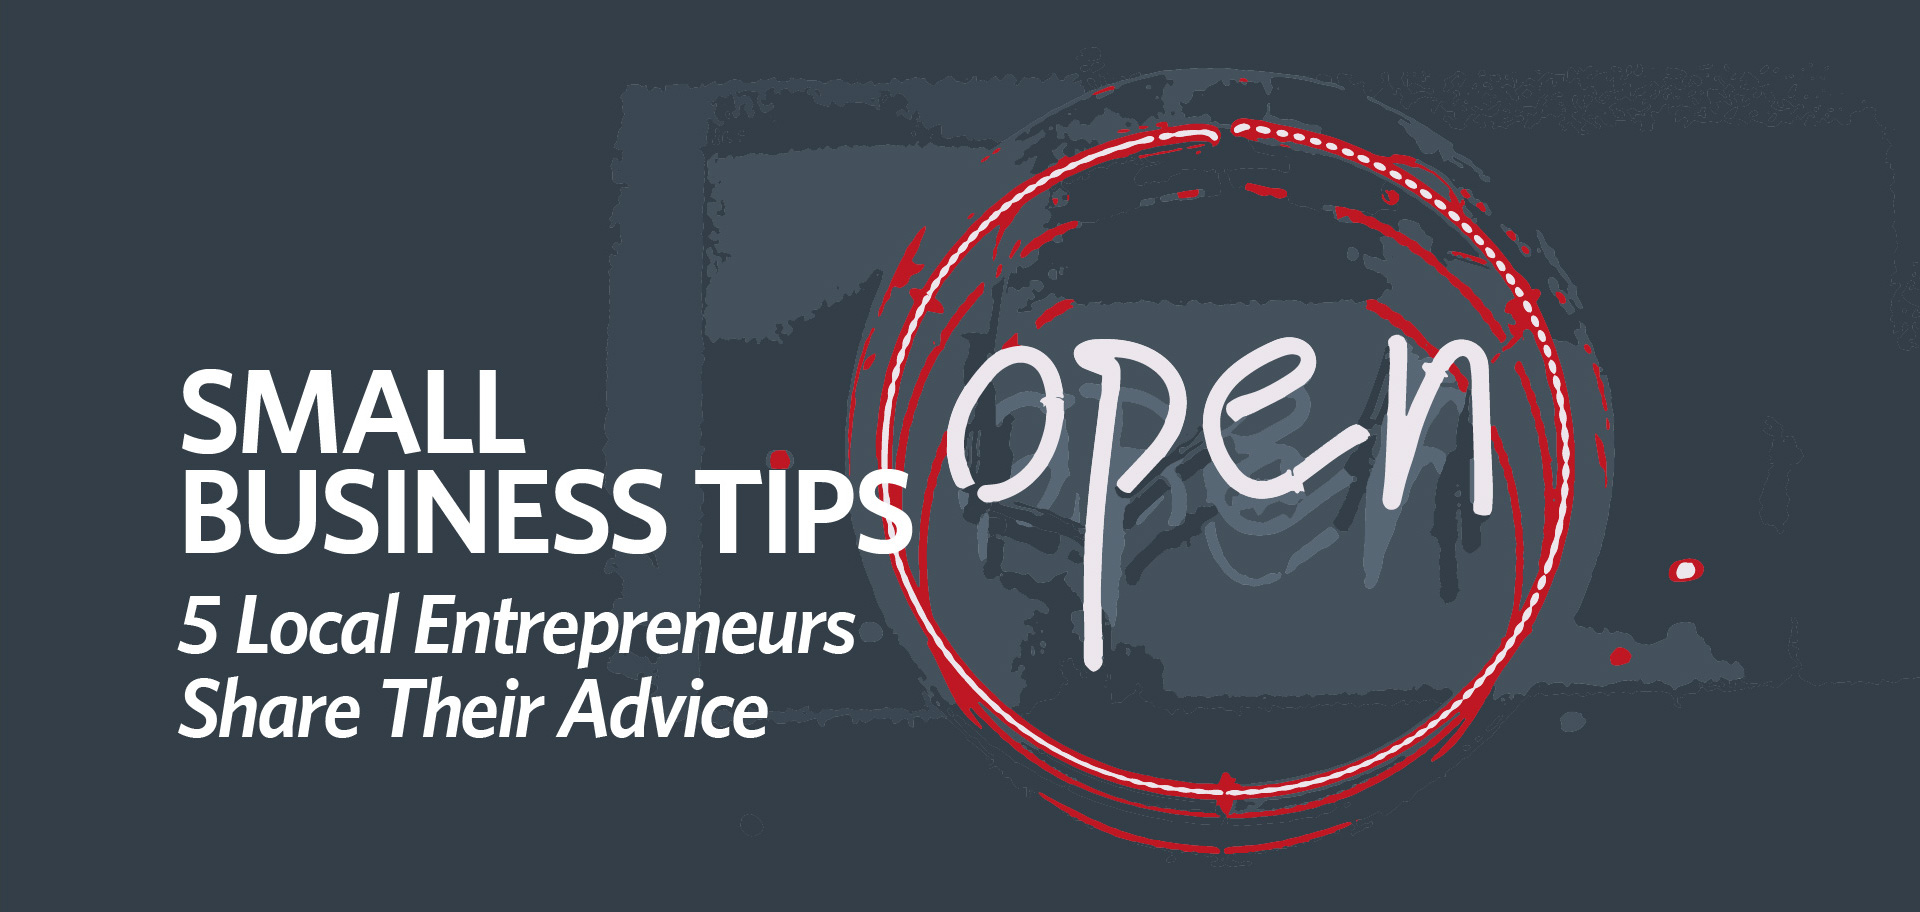 Small Business Tips: 5 Local Entrepreneurs Share Their Advice by Kettle Fire Creative small business Small Business Tips: 5 Local Entrepreneurs Share Their Advice small business tips fi